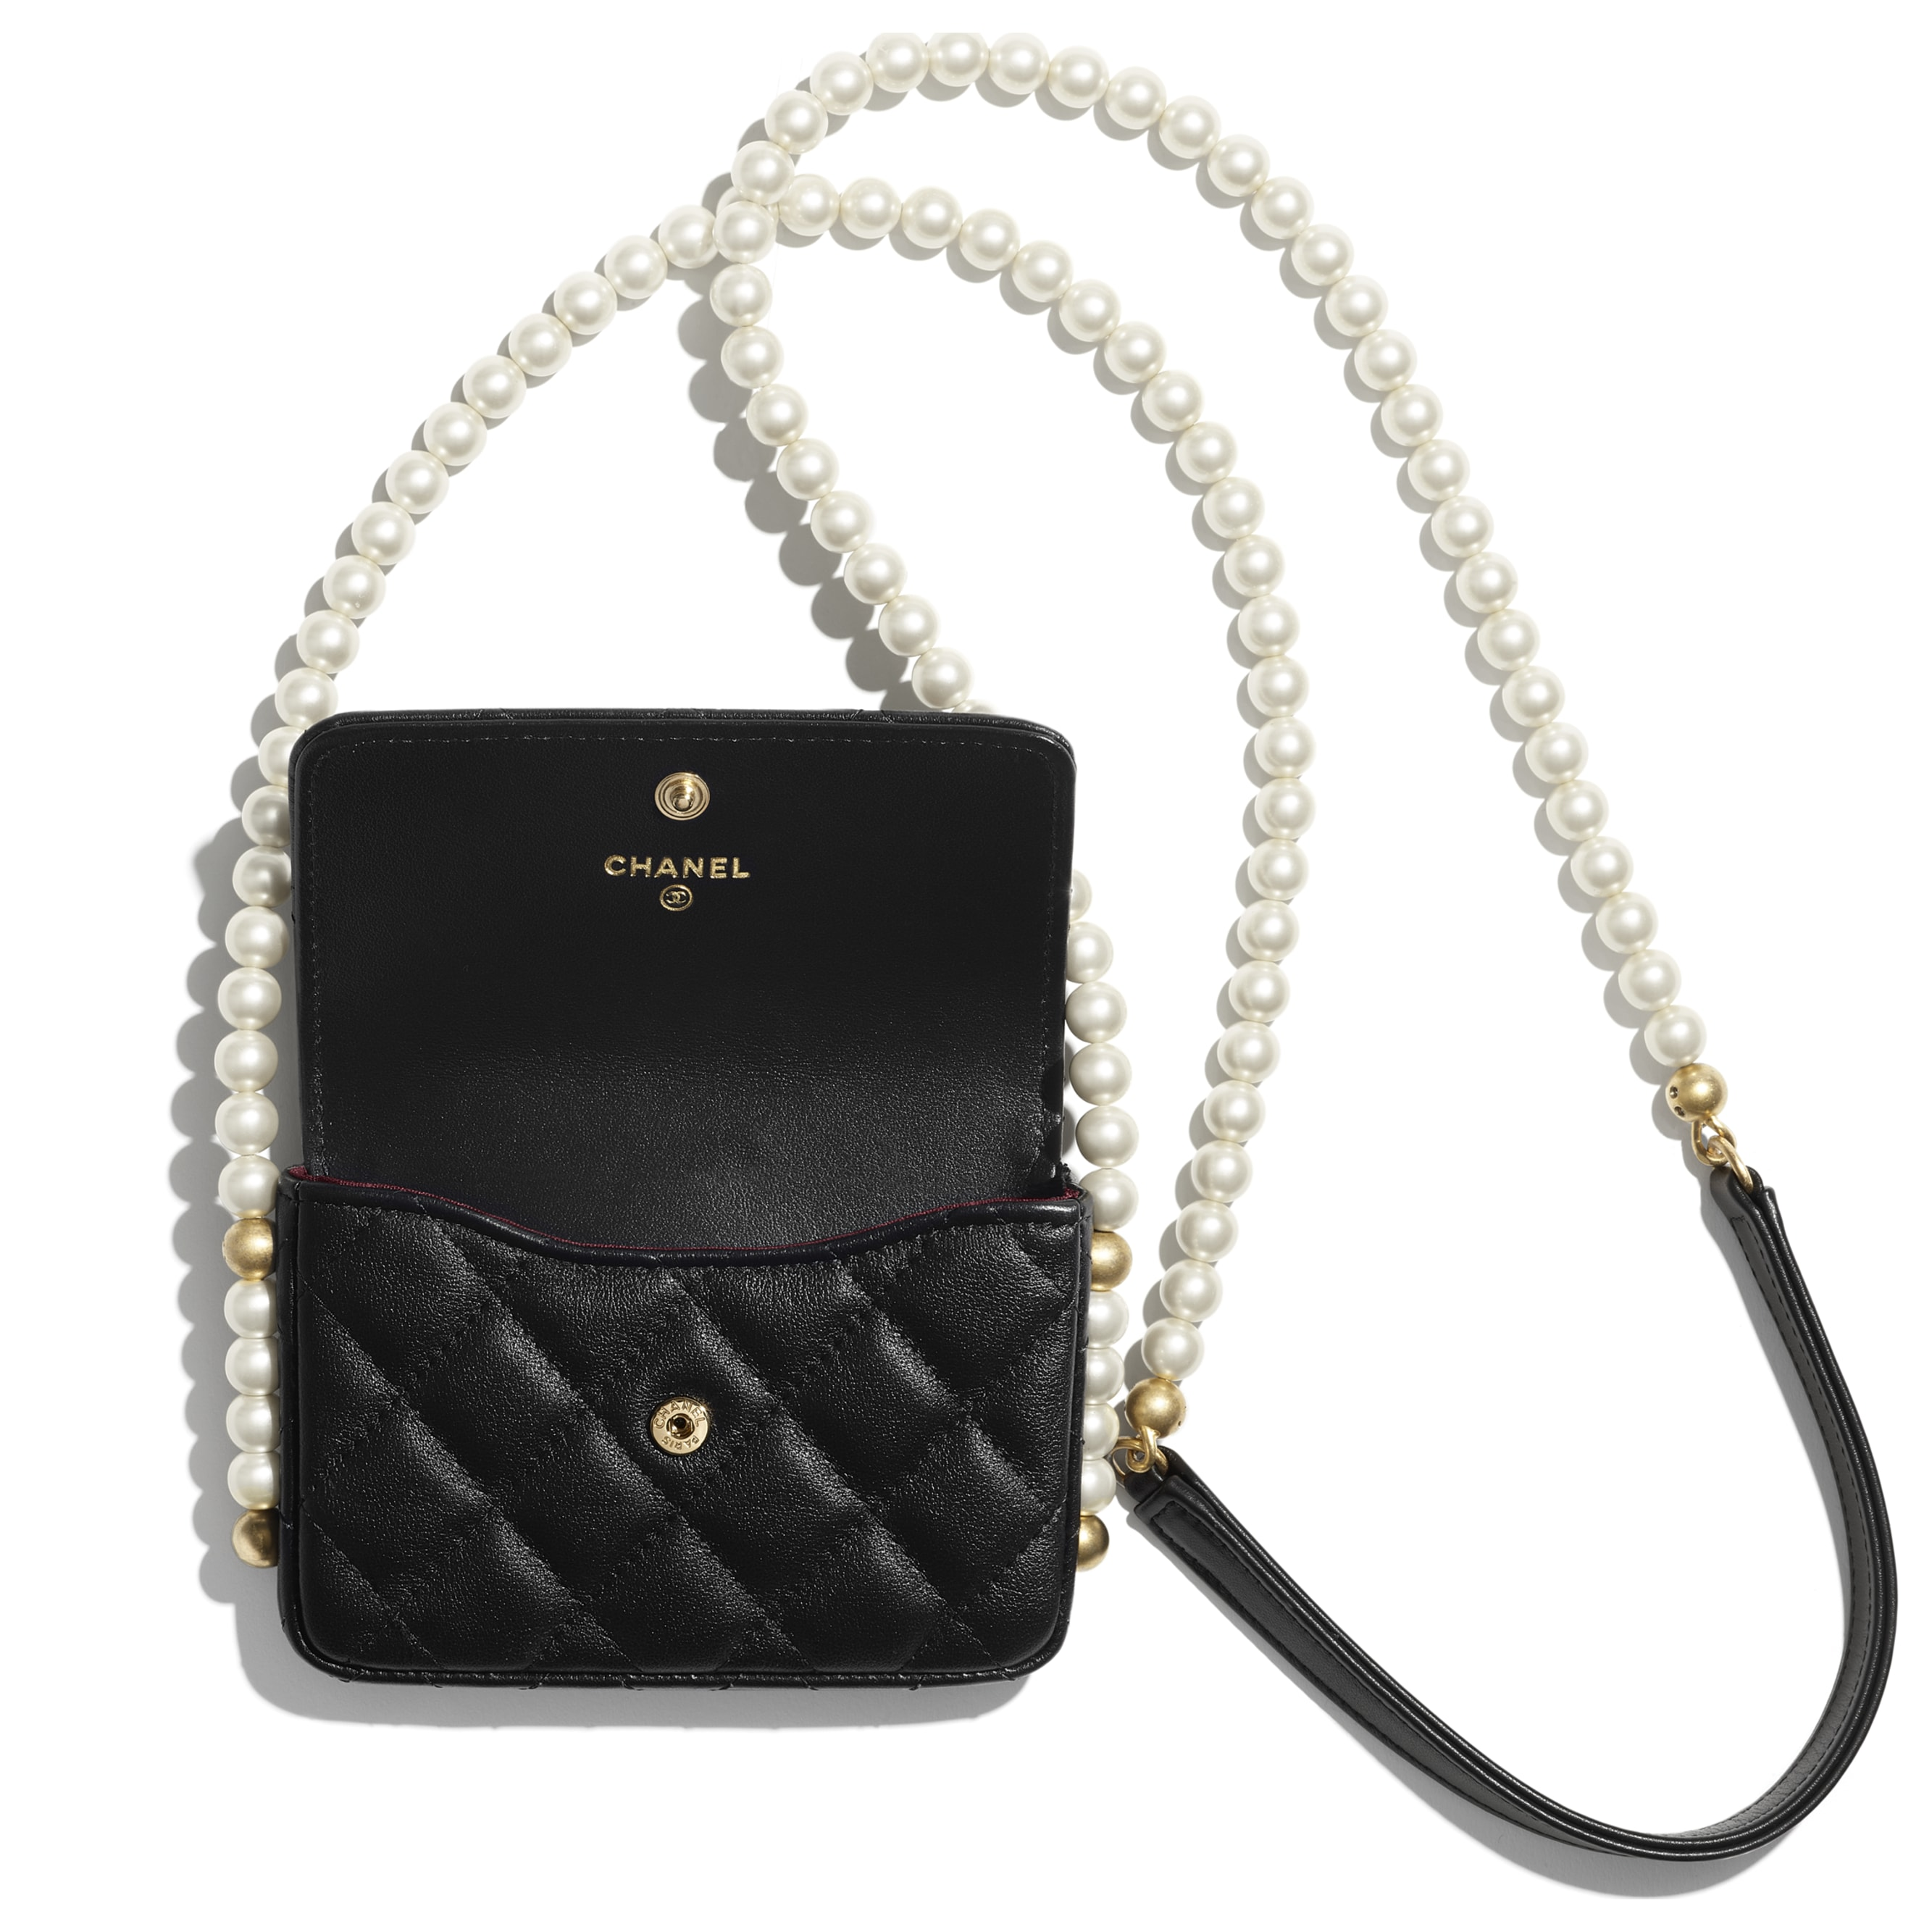 Flap Card Holder with Chain - Black - Calfskin, Imitation Pearls & Gold-Tone Metal - CHANEL - Alternative view - see standard sized version